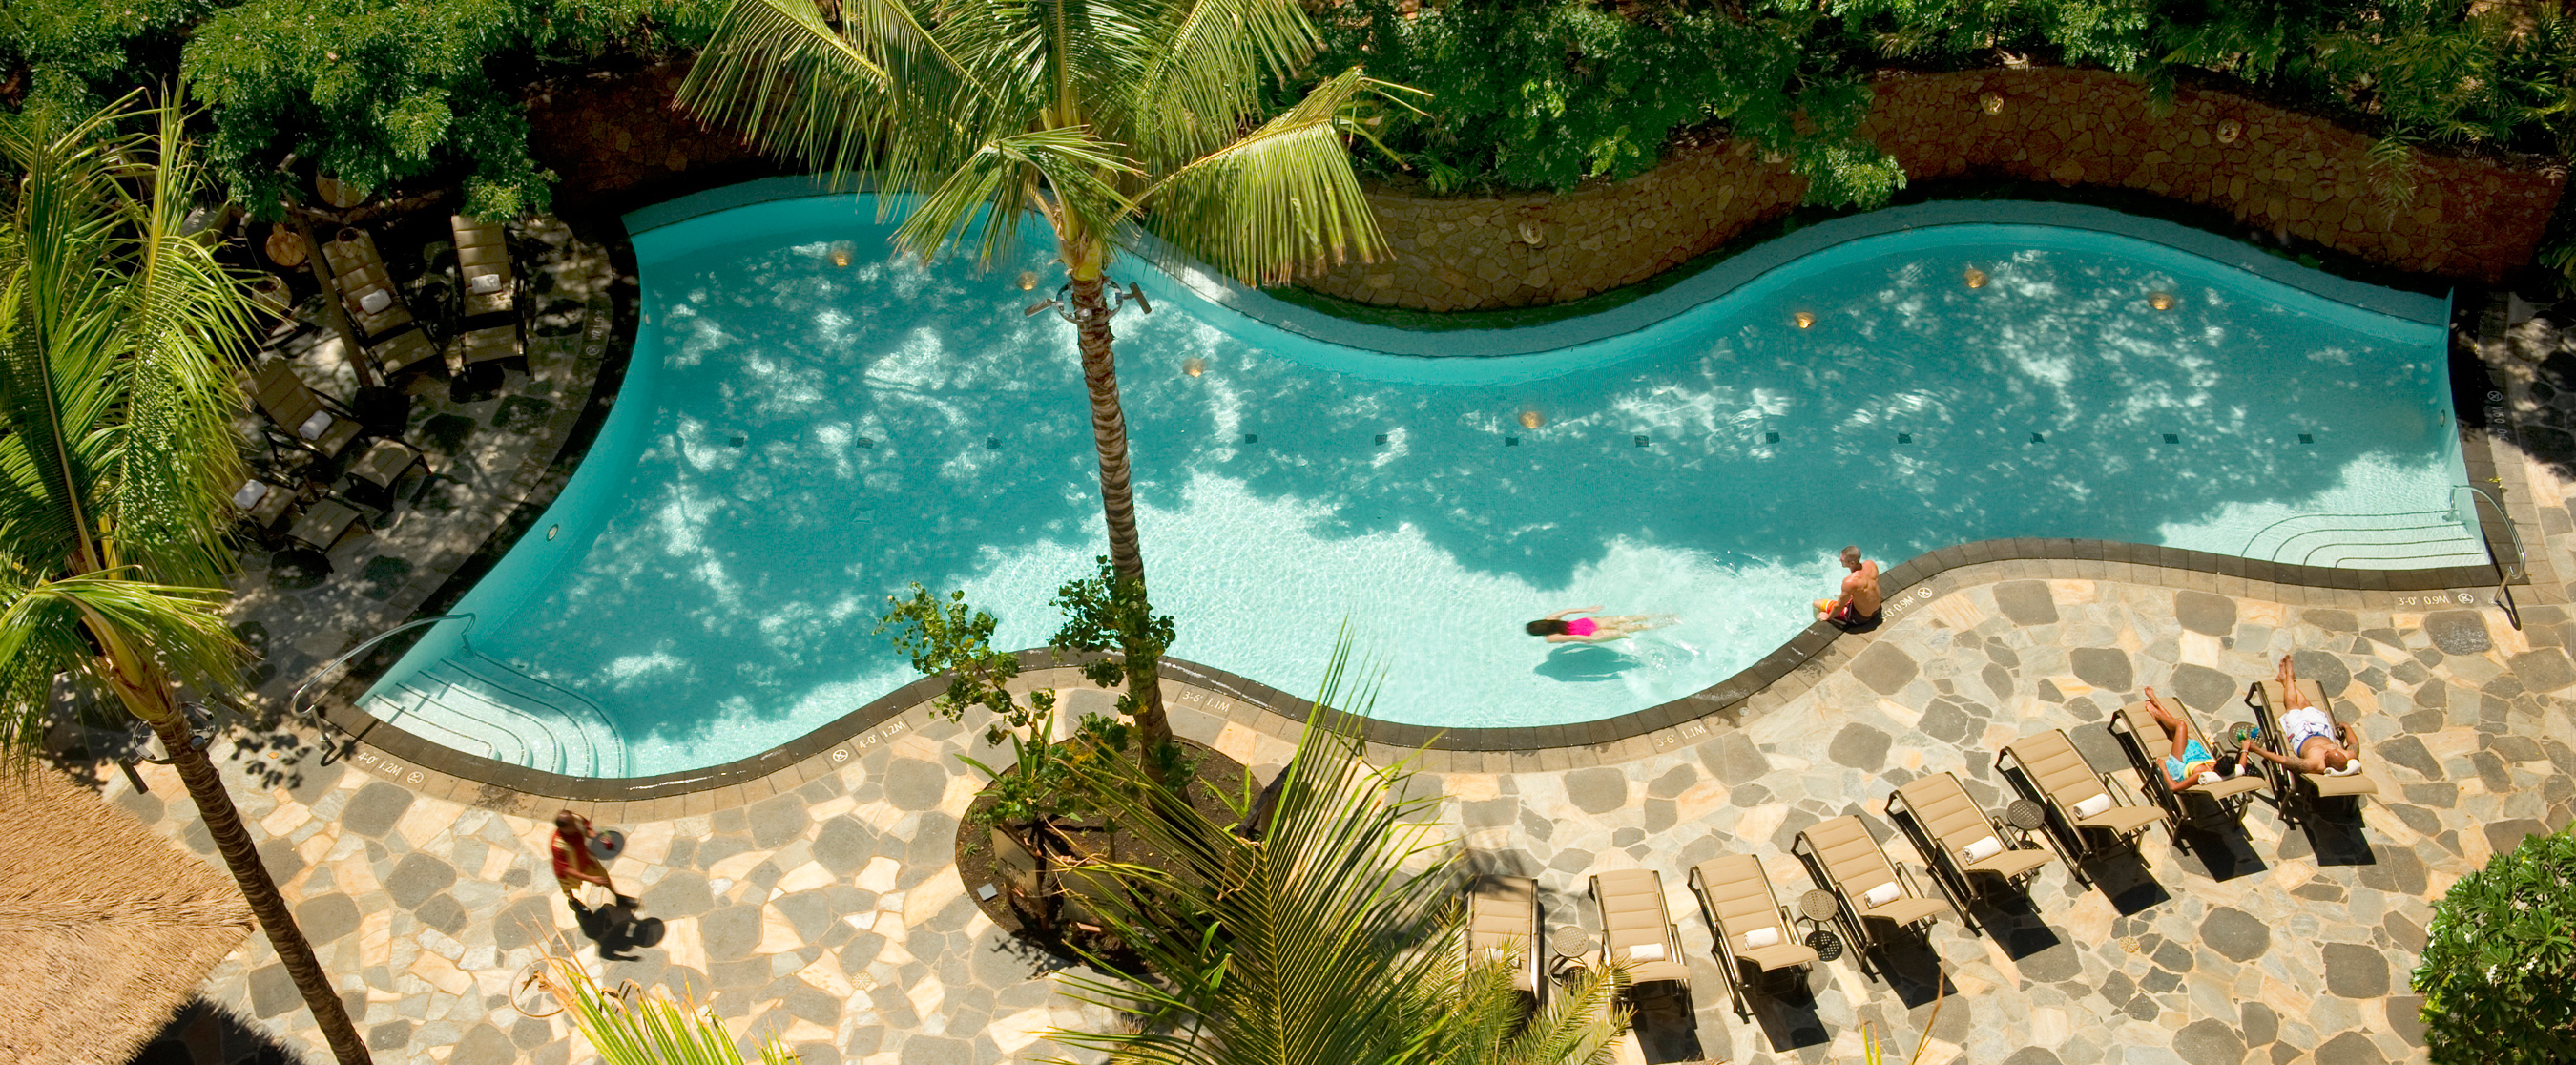 An aerial view of a serpentine pool with a rock retaining wall, surrounded by lounge chairs and palm trees